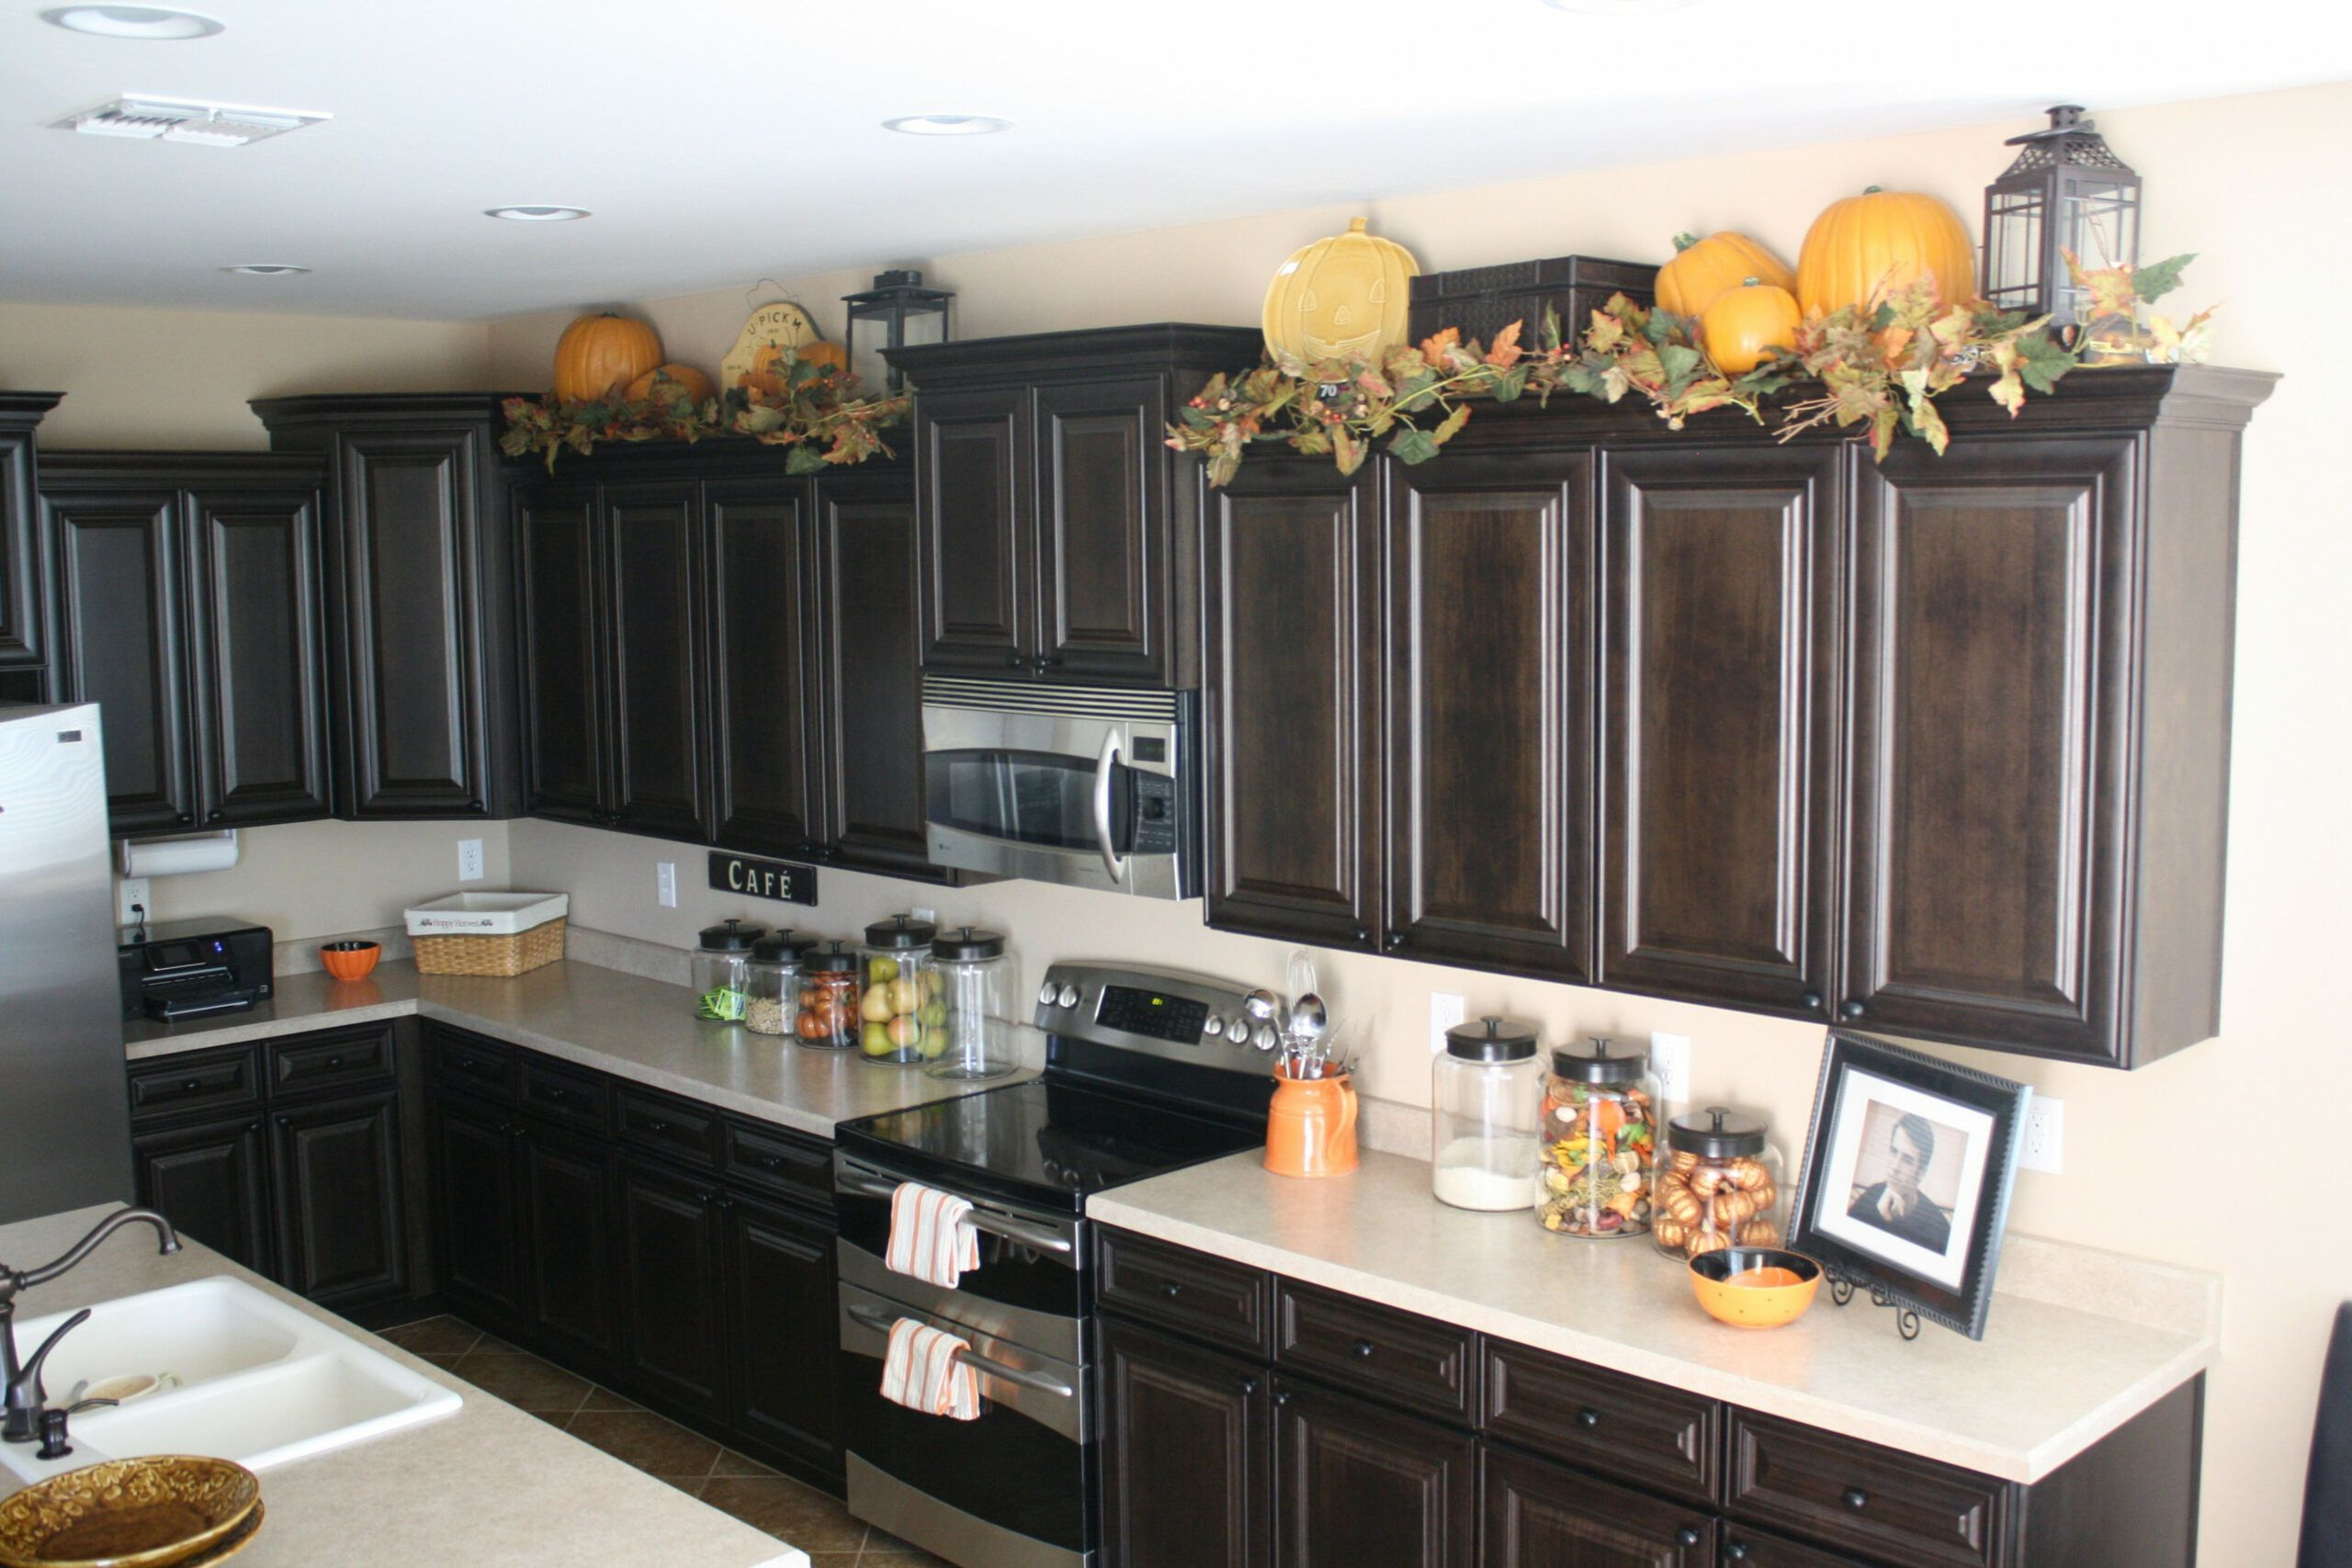 Seven Unexpected Ways Decorating Top Of Kitchen Cabinets Can Make Your Life In 2020 Top Kitchen Cabinets Decor Kitchen Cabinets Decor Decorating Above Kitchen Cabinets